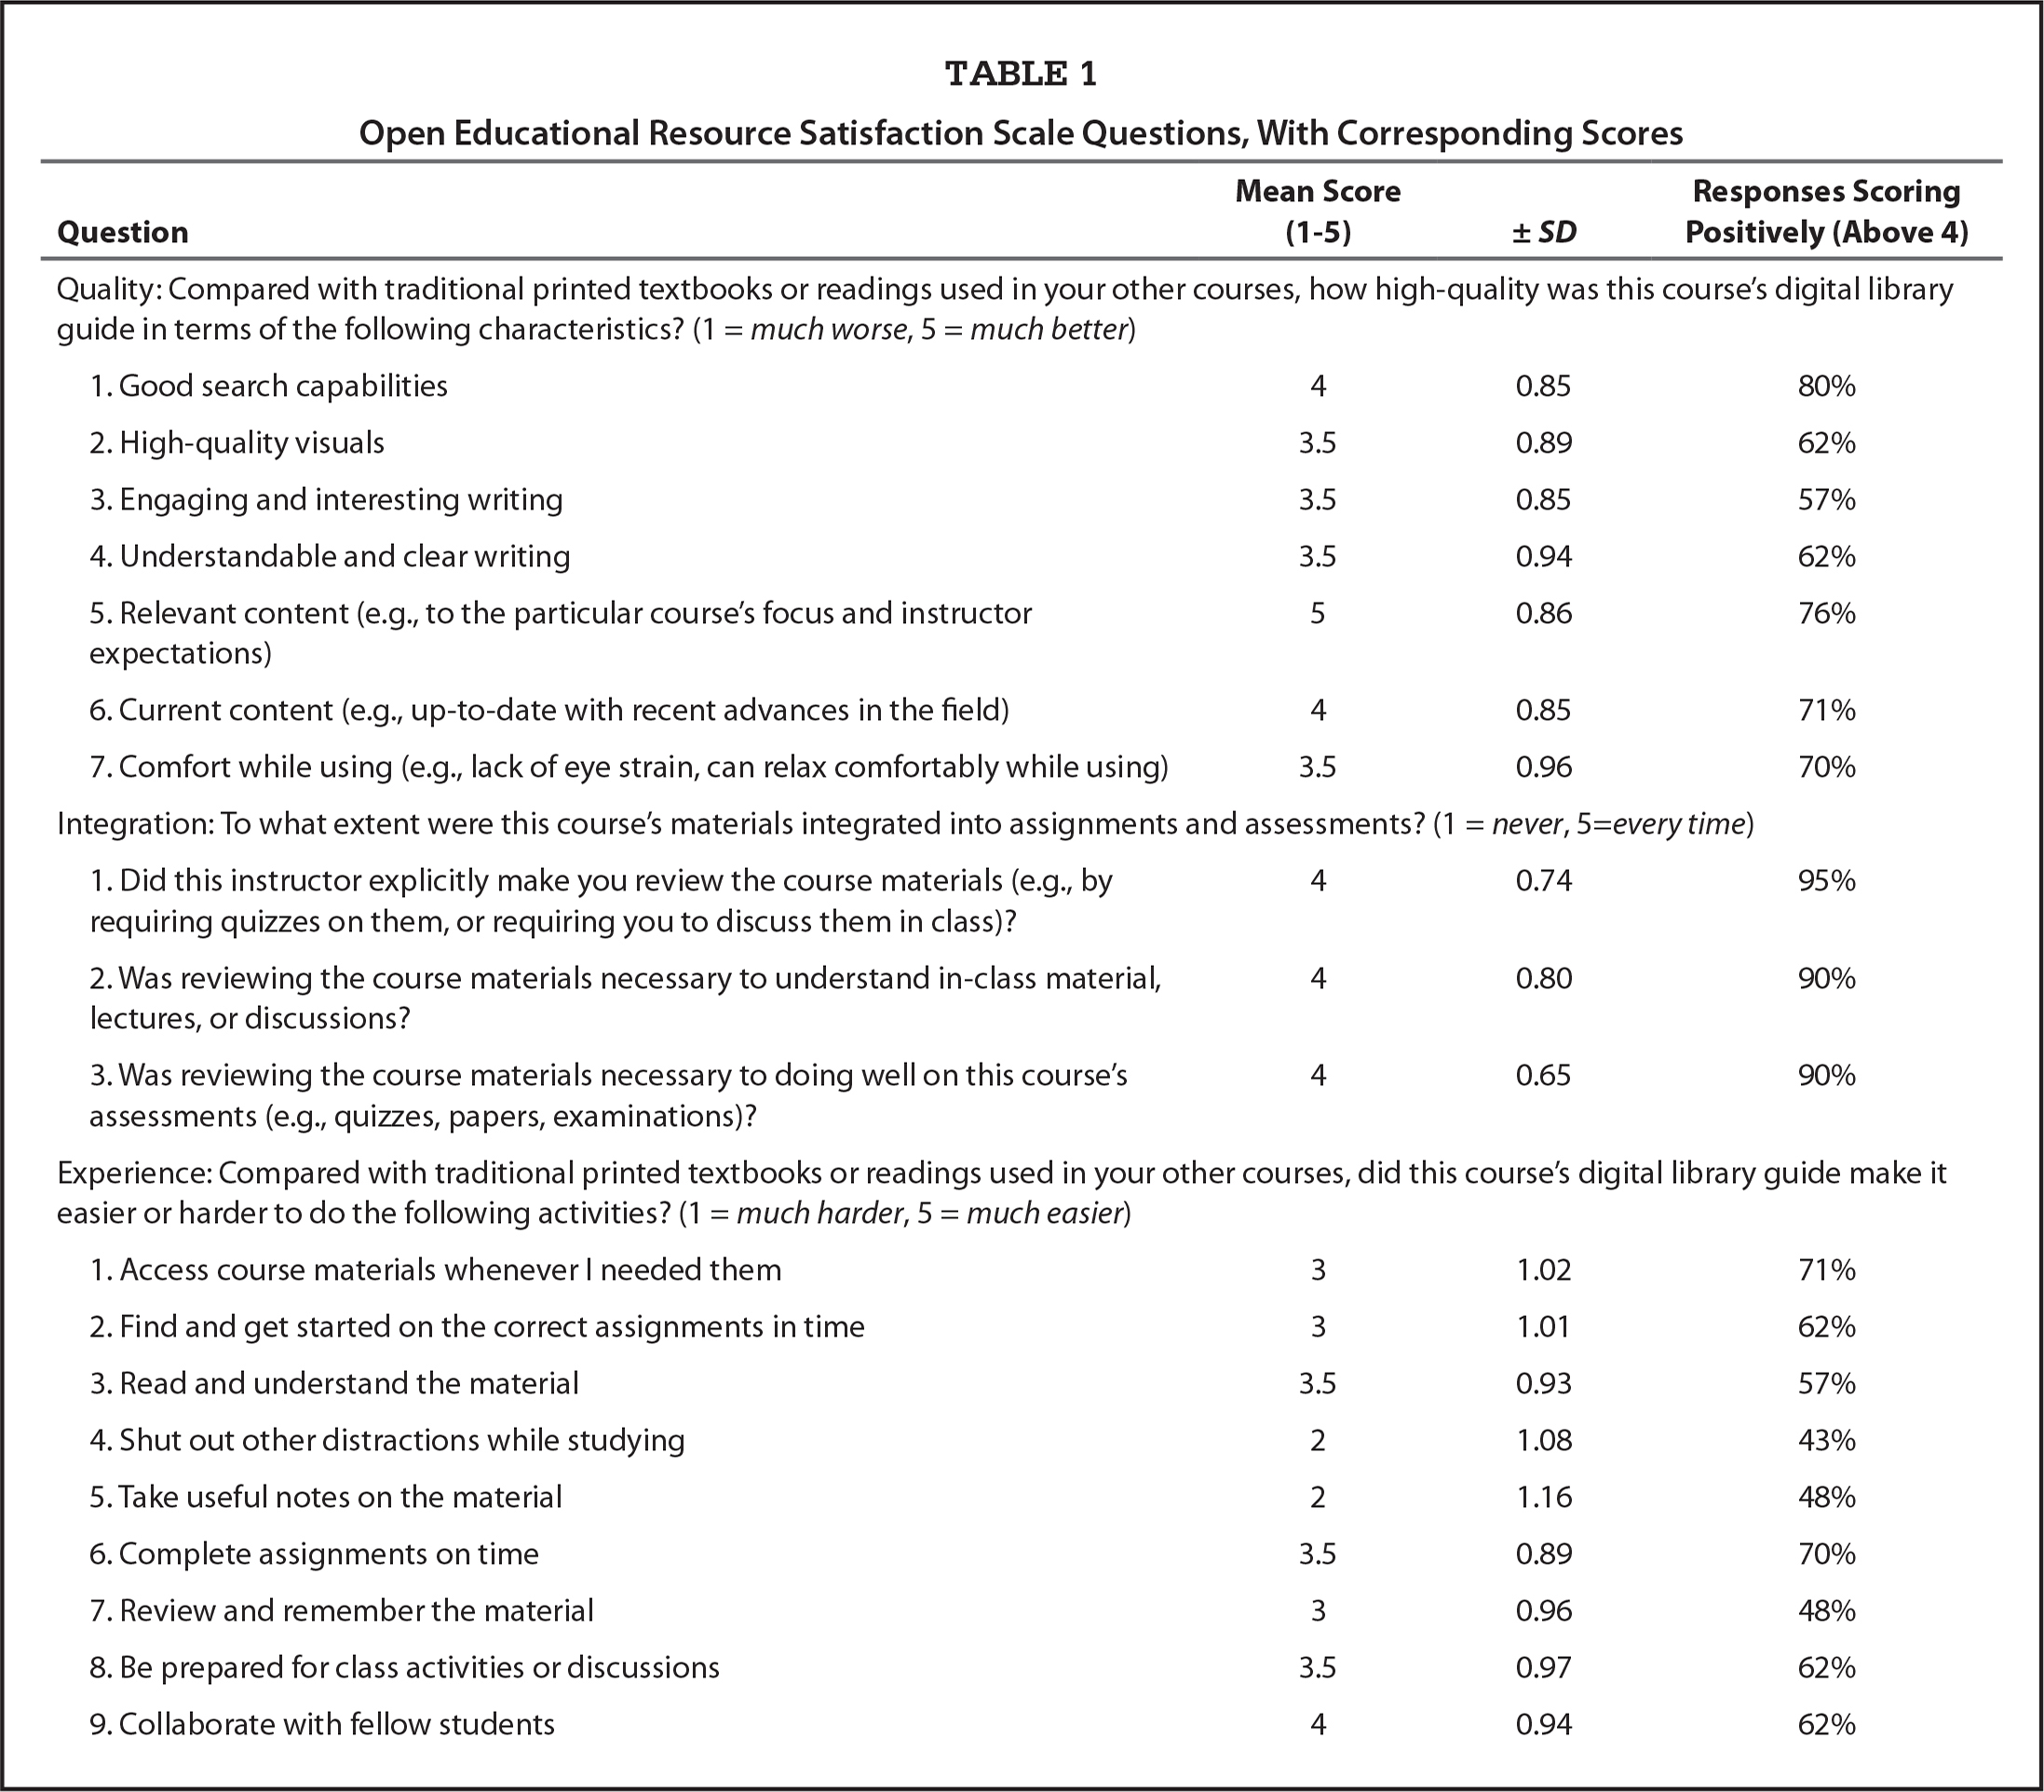 Open Educational Resource Satisfaction Scale Questions, With Corresponding Scores